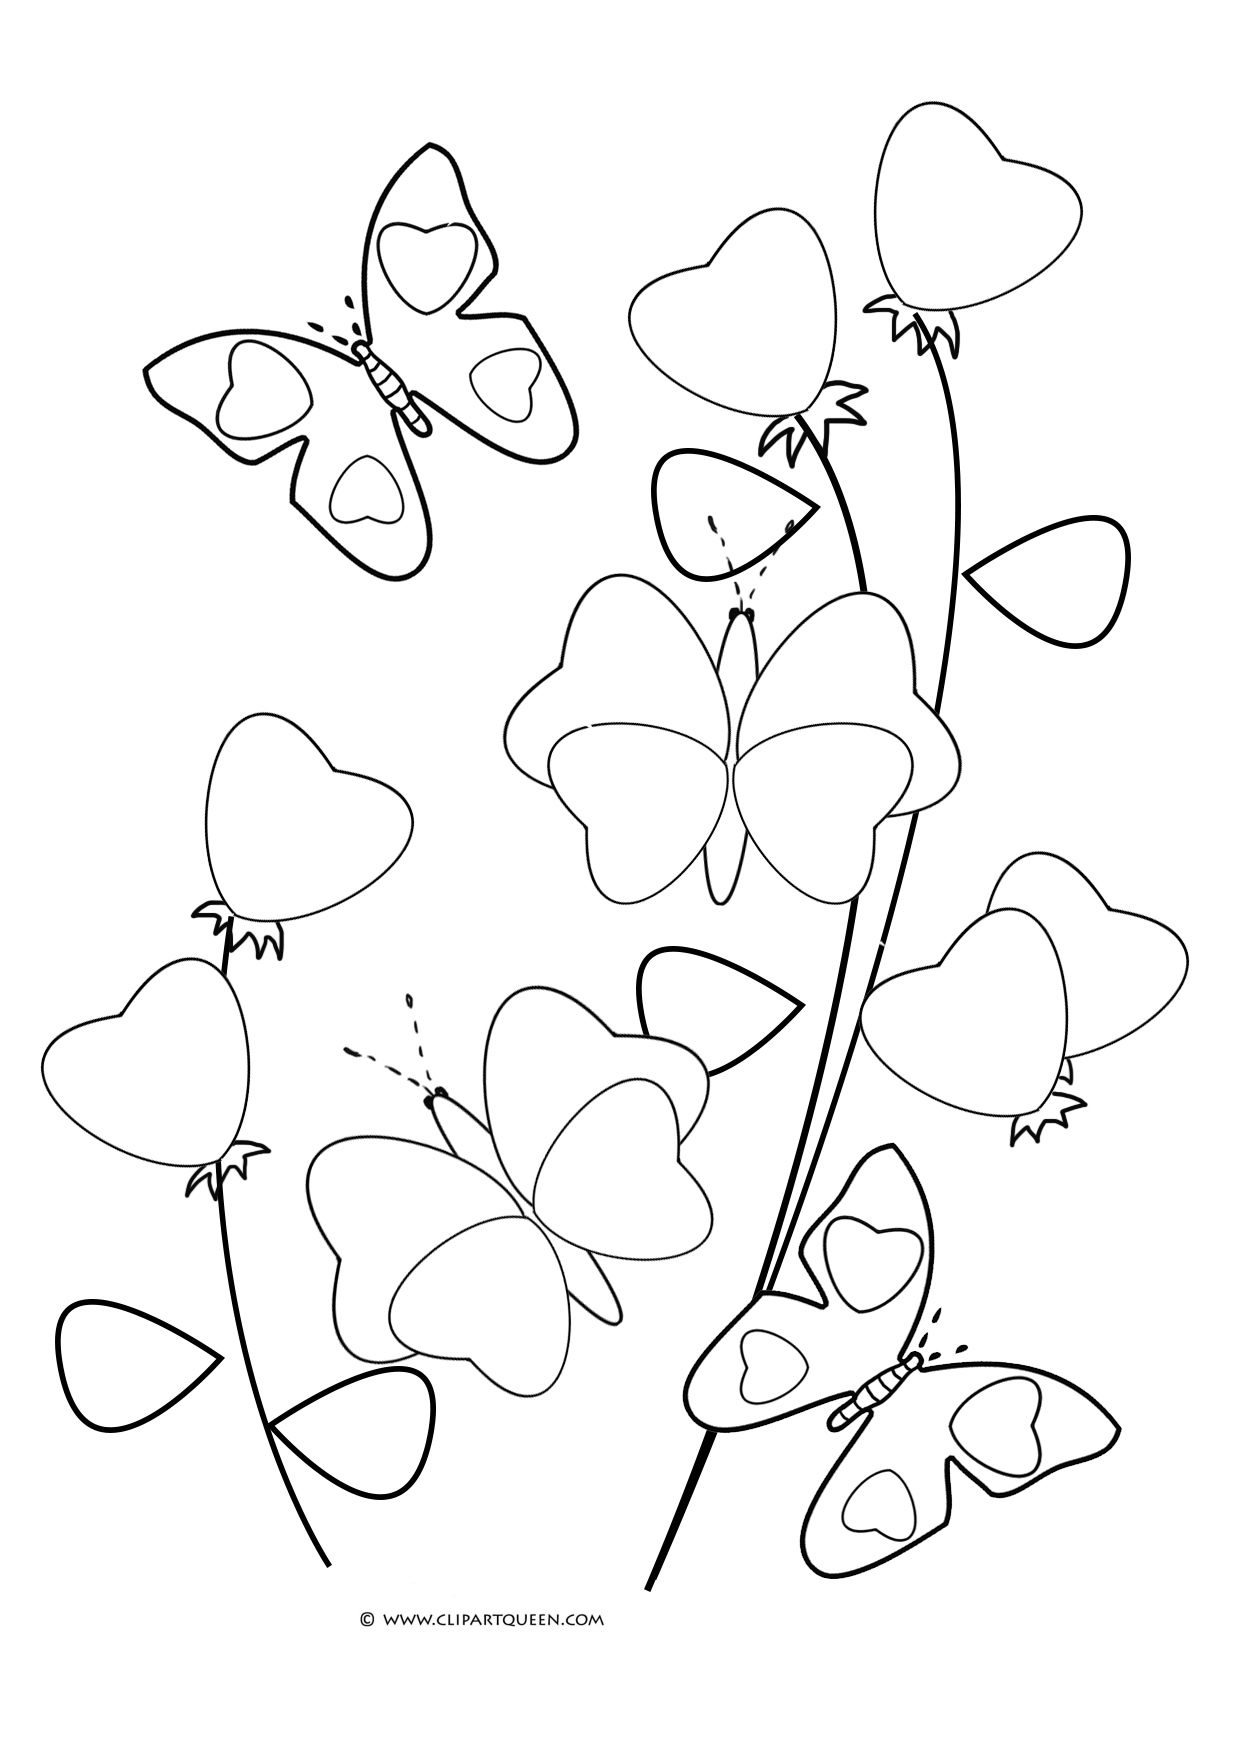 heart shaped coloring pages. heart shaped butterflies and flowers 11 Valentine s Day coloring pages